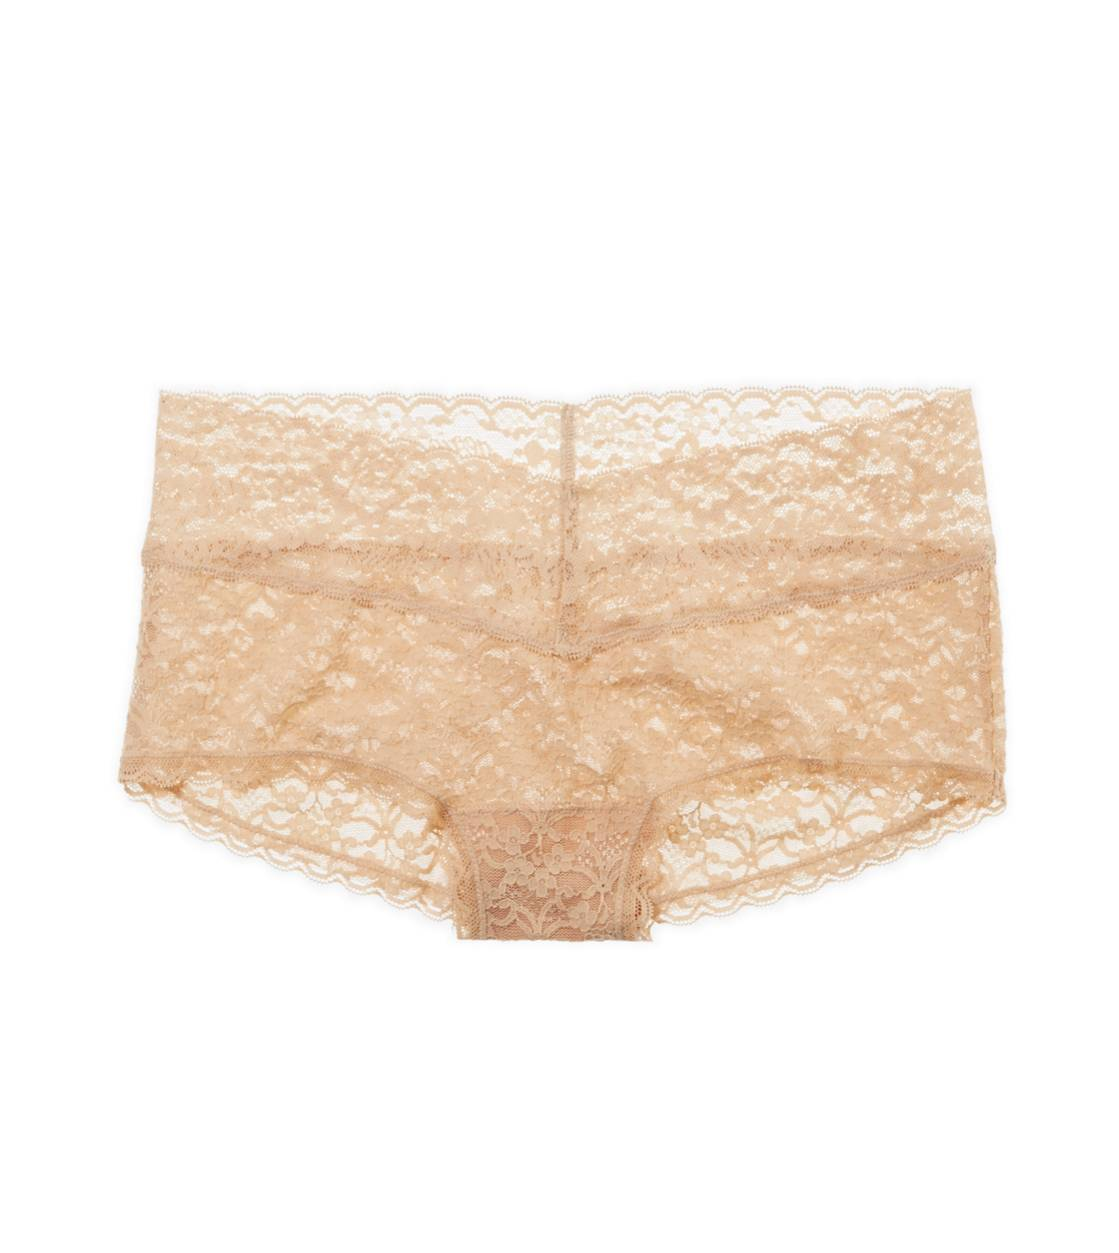 Natural Nude Aerie Vintage Lace Girly Short